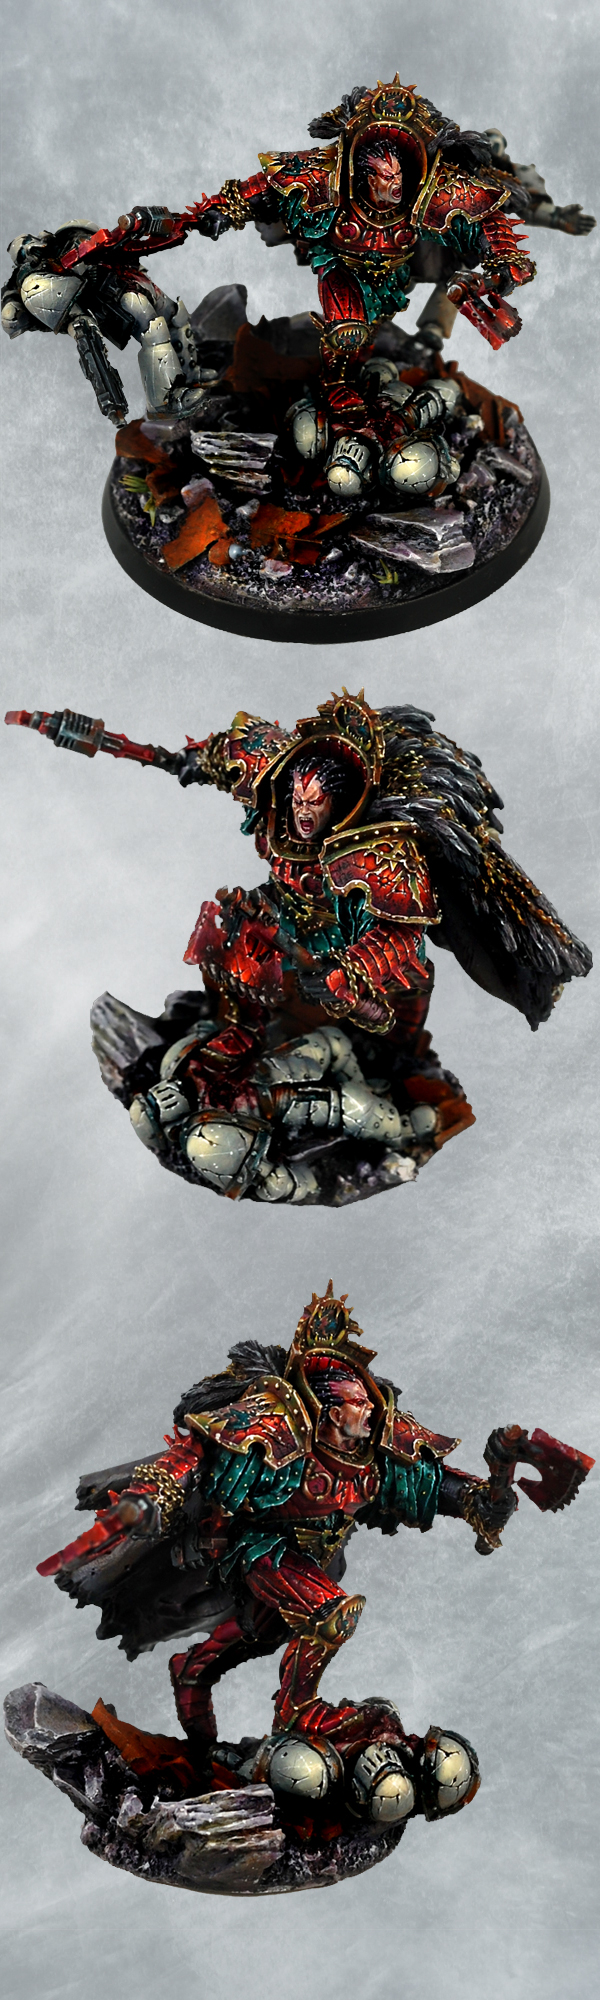 Angron, World Eaters Warlord